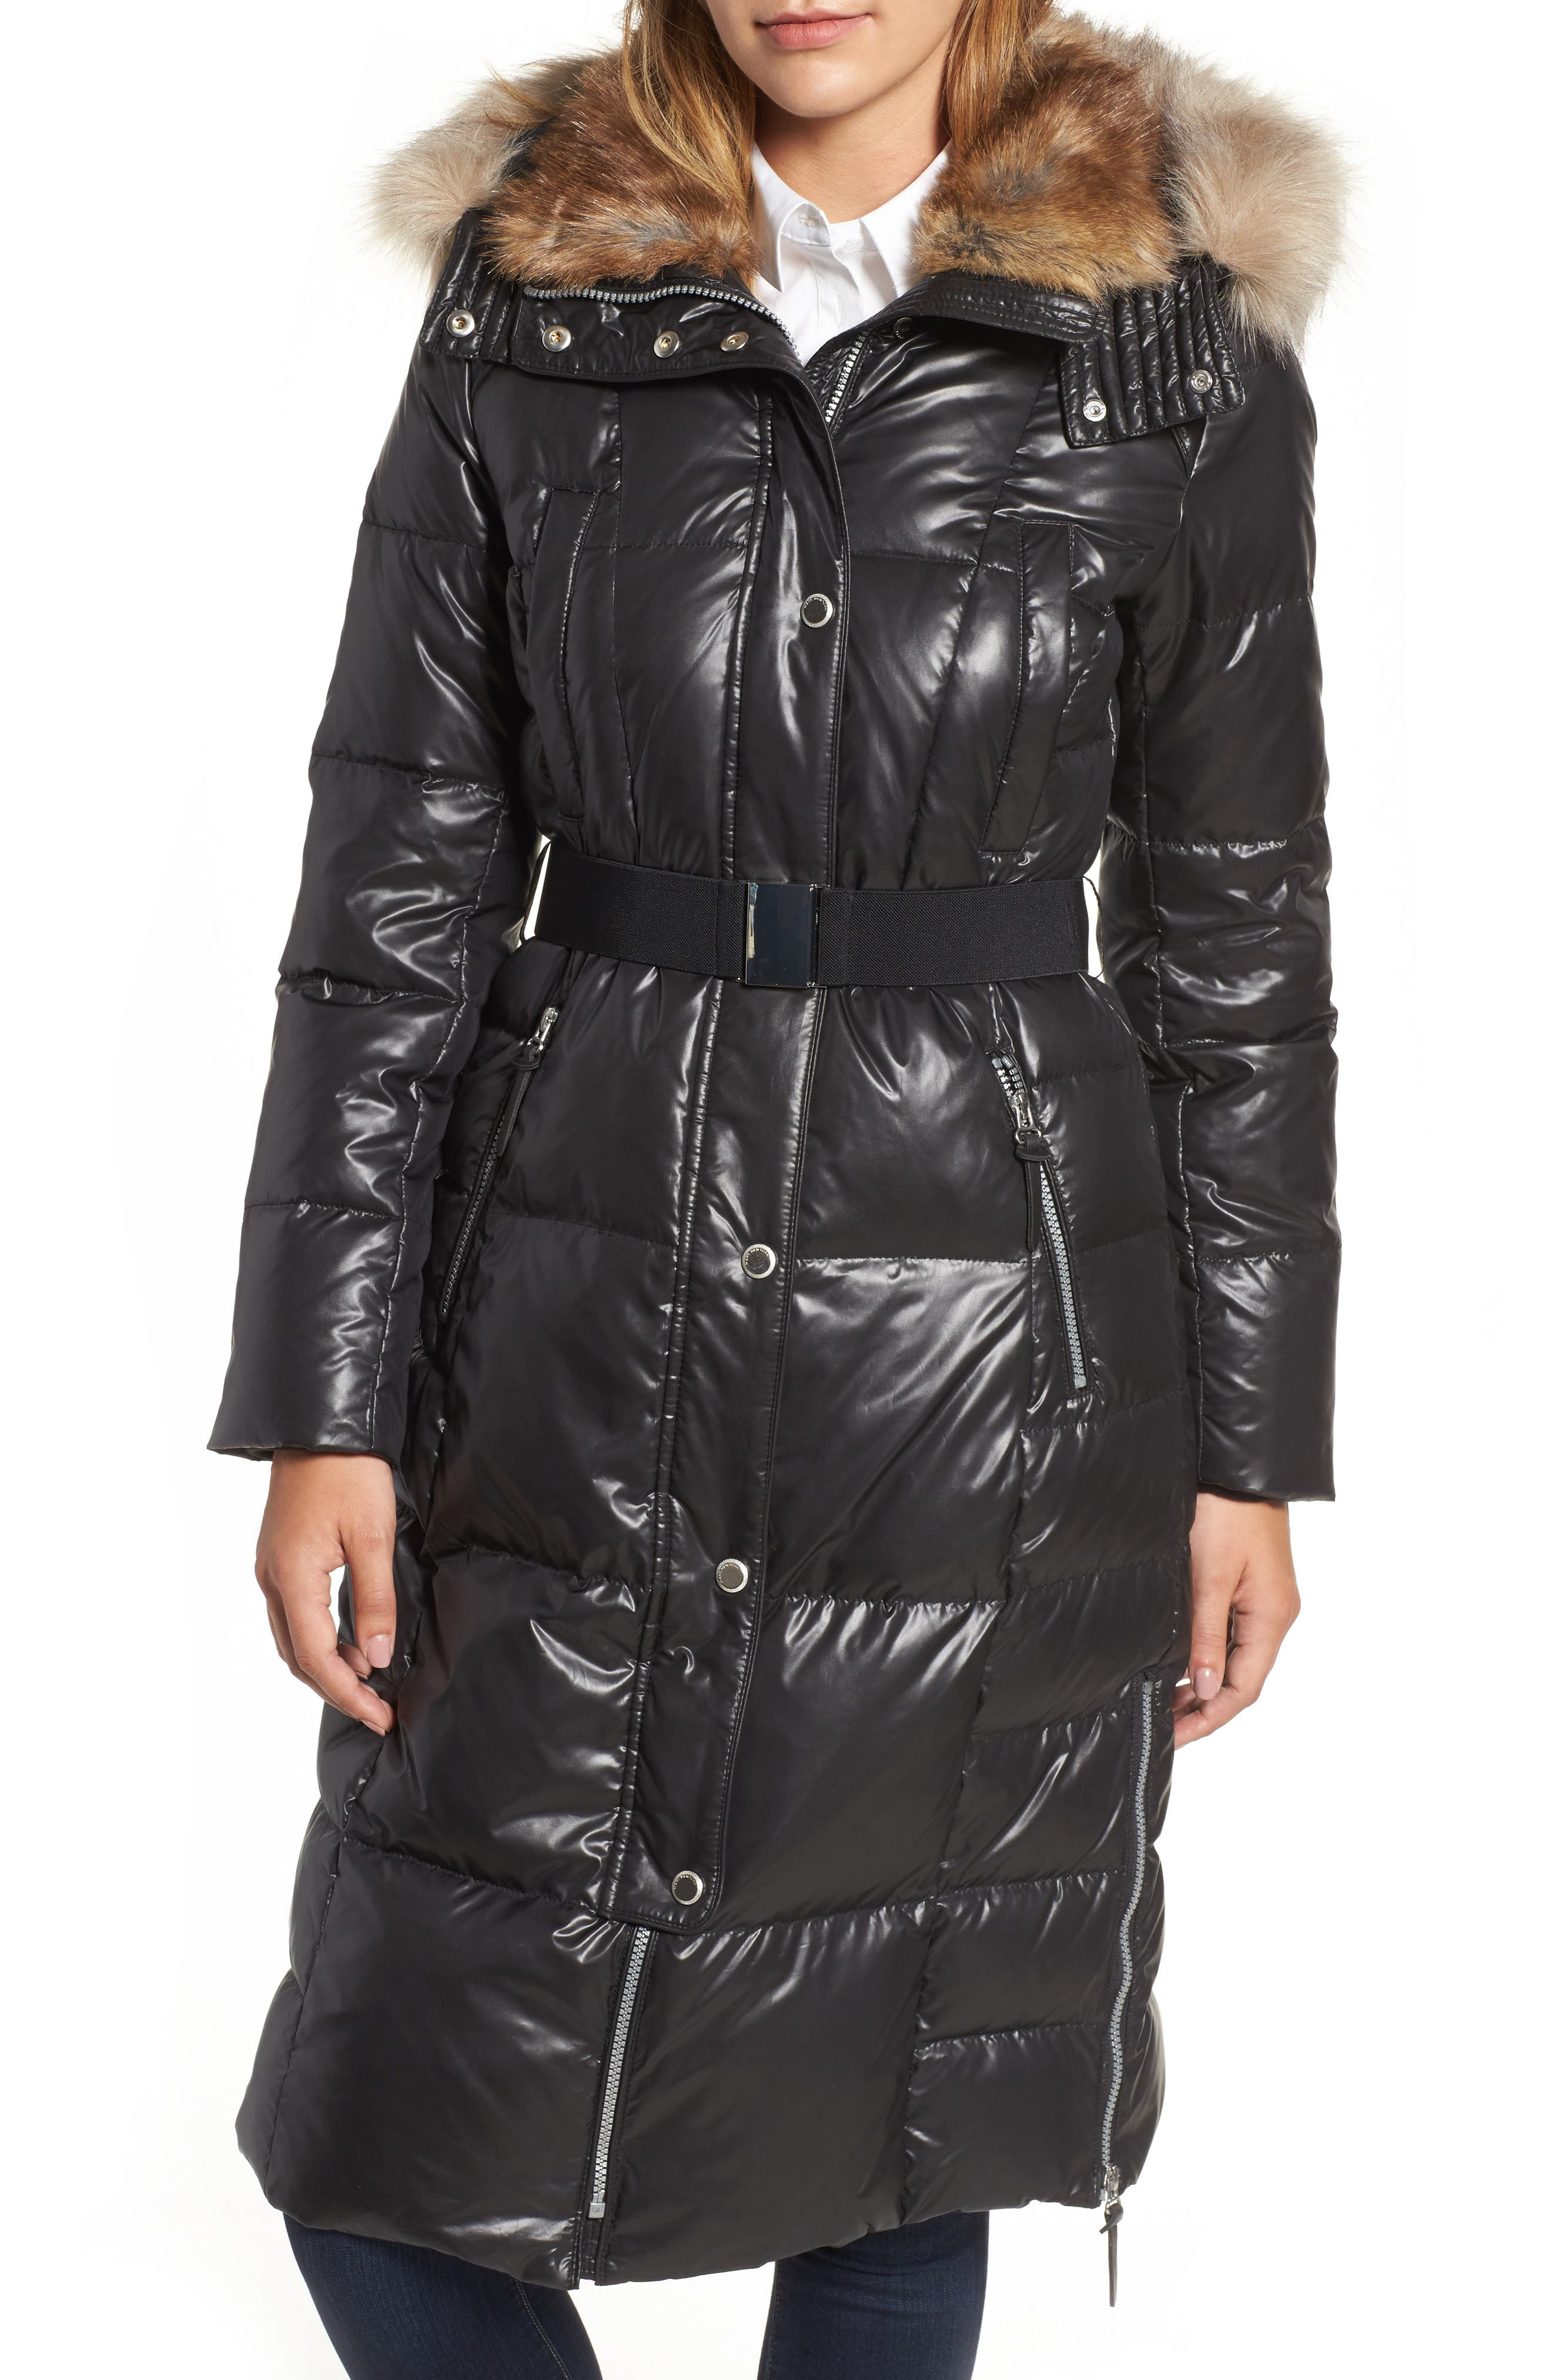 Main Image - Andrew Marc Lacquer Down Puffer Jacket with Faux Fur Hood